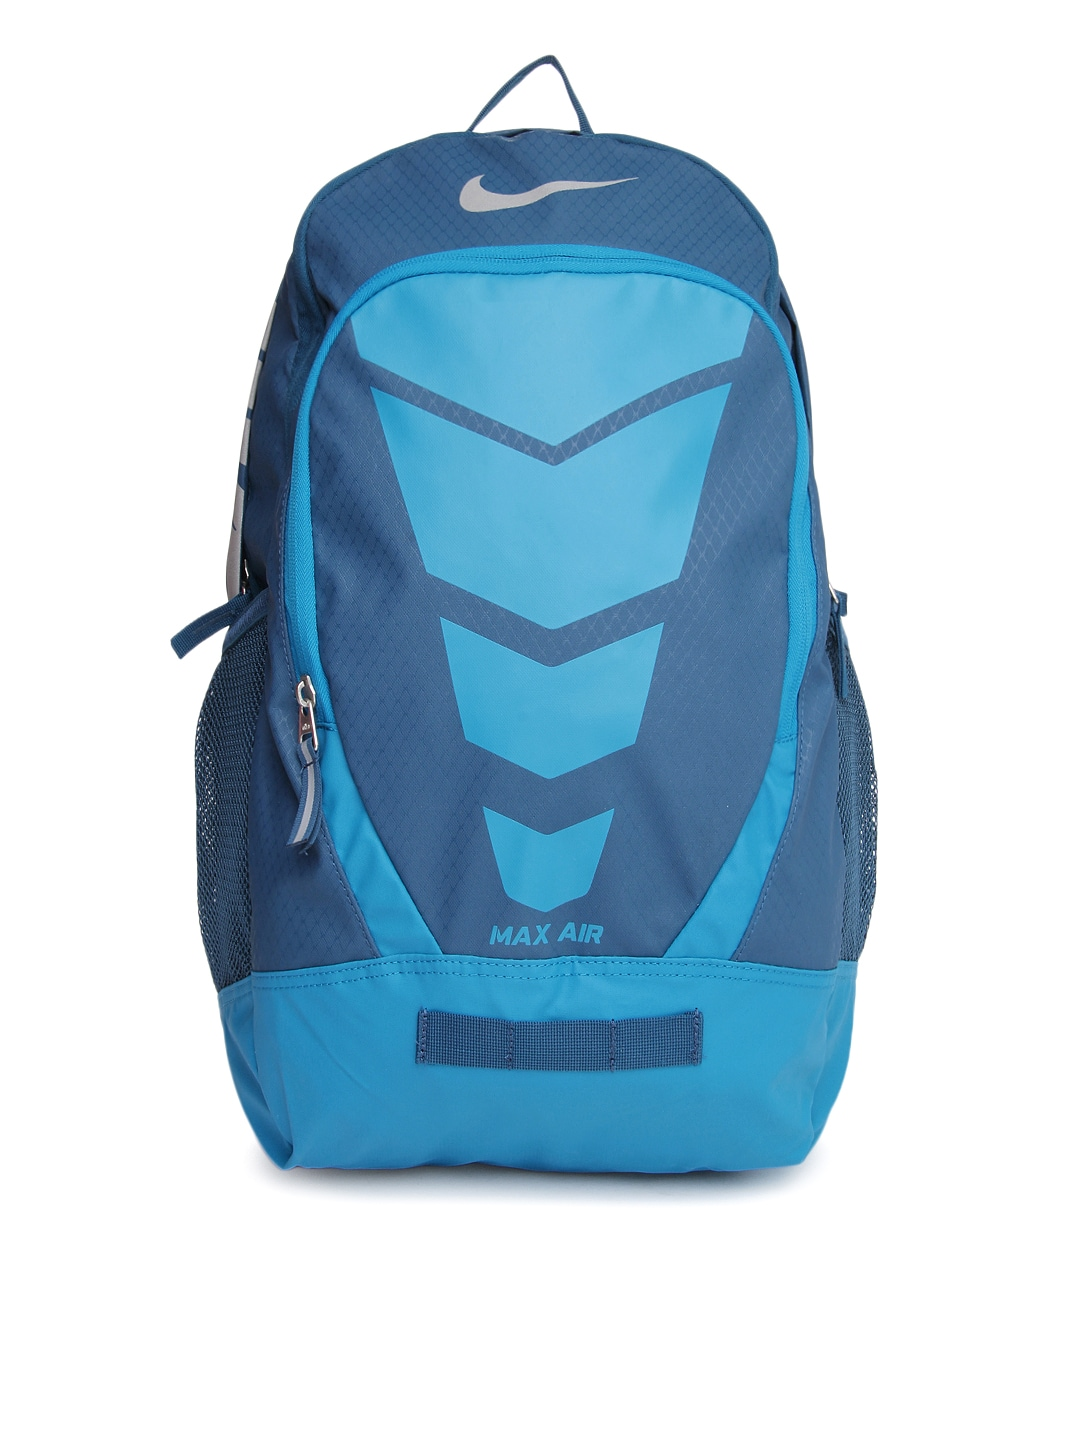 7852c5edcee0 Nike ba4883-440 Unisex Blue Max Air Vapor Backpack - Best Price in ...